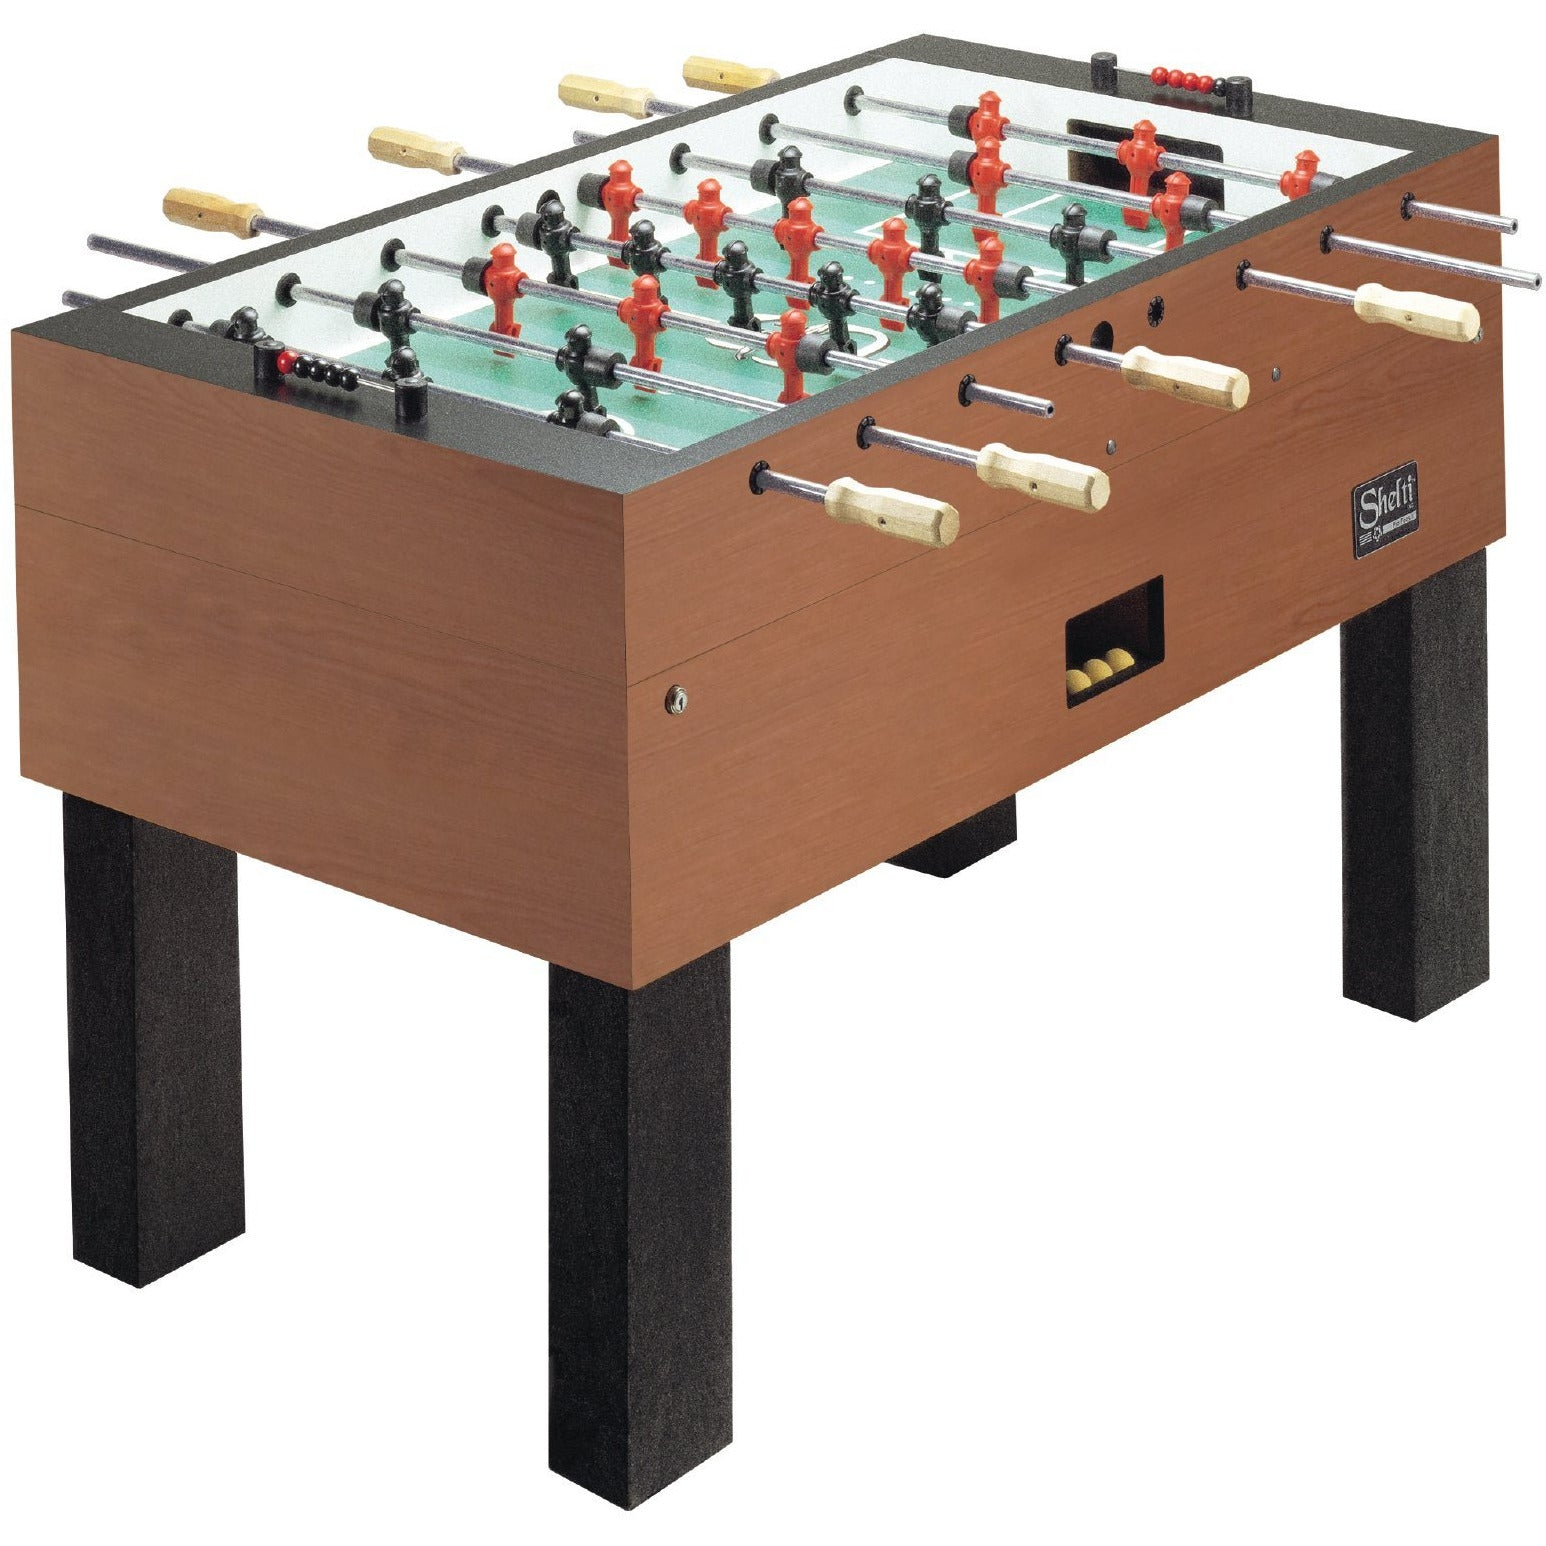 "Shelti Pro Foos III Cherry 55"" Foosball Table - Gaming Blaze"